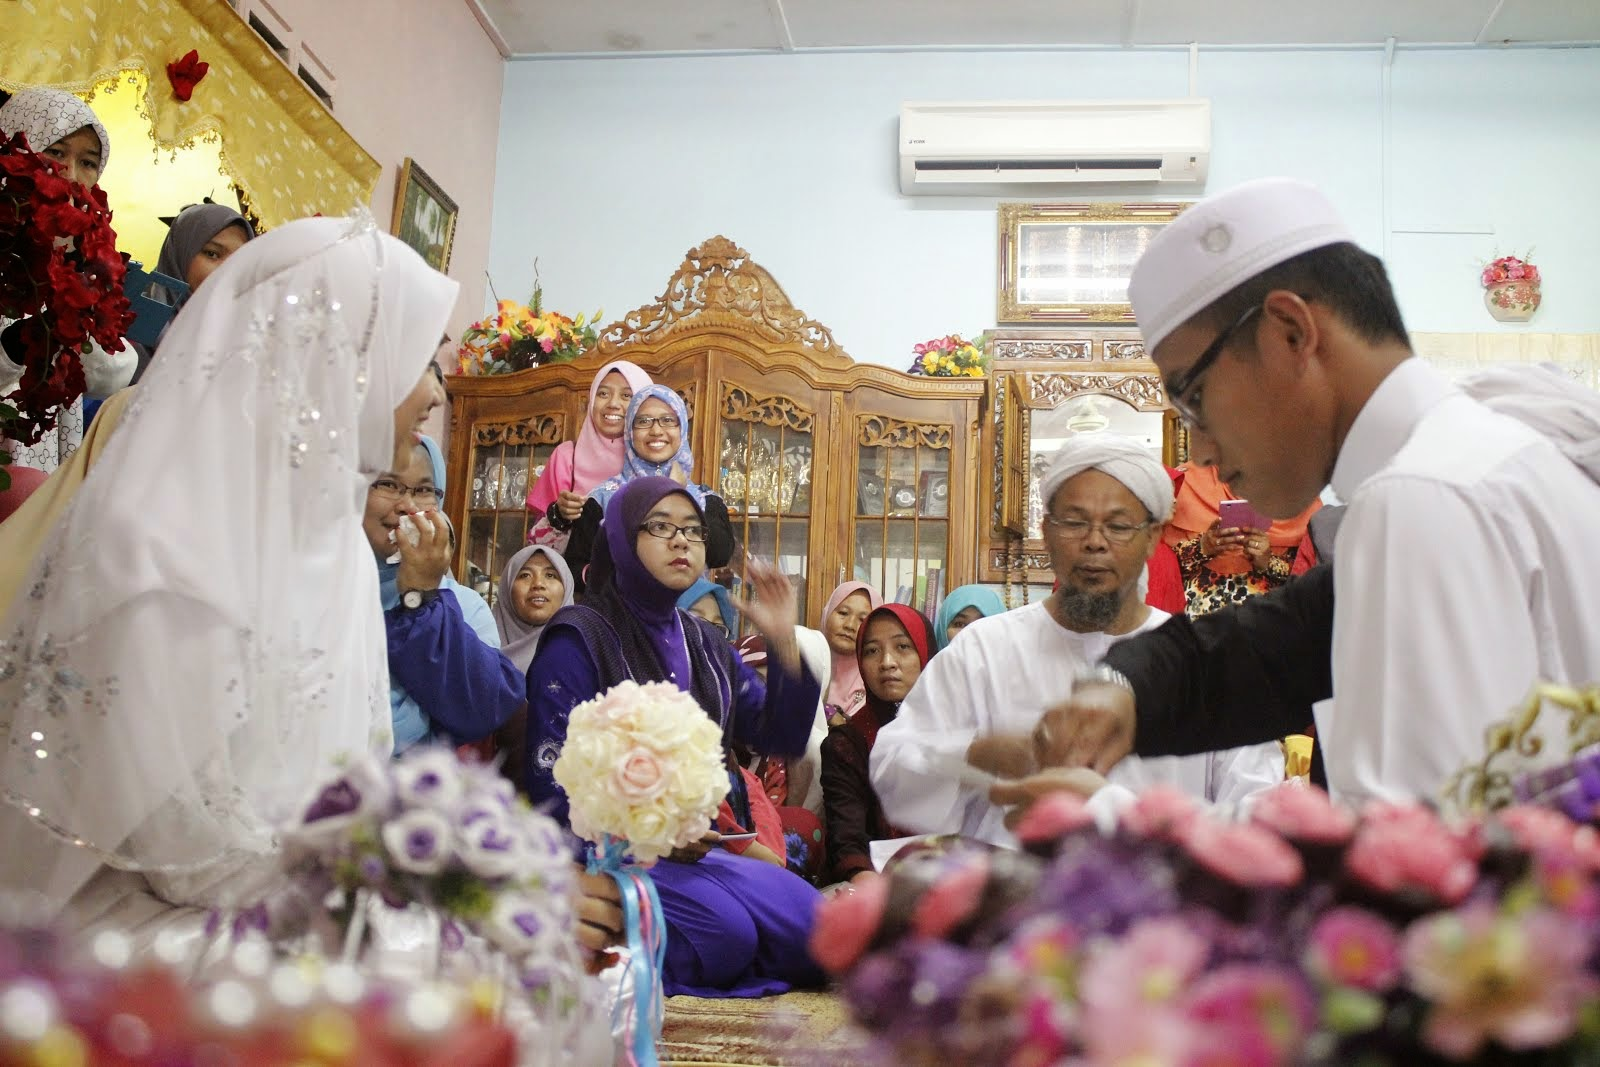 OUR NIKAH DAY (07.06.2014)